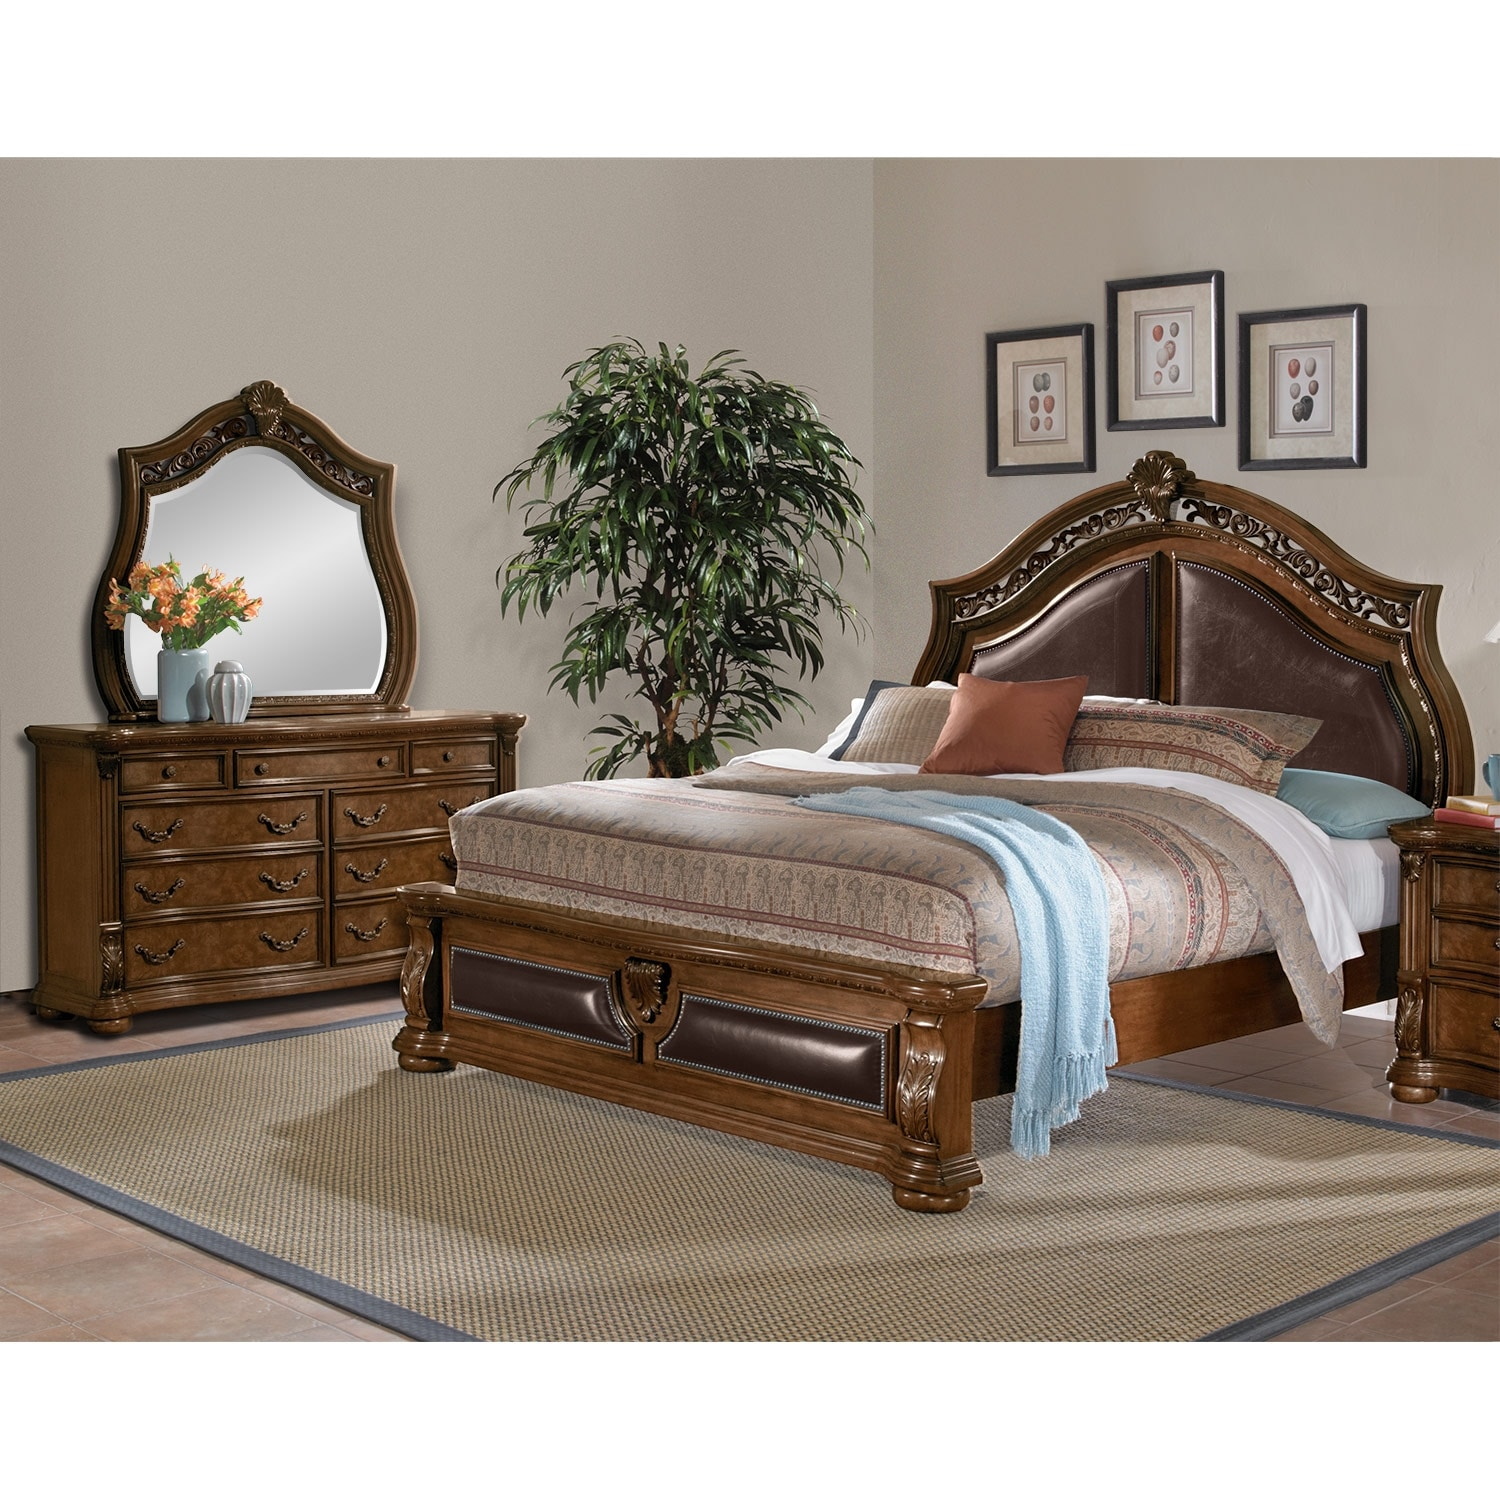 Ordinaire Morocco 5 Piece Queen Upholstered Bedroom Set   Pecan